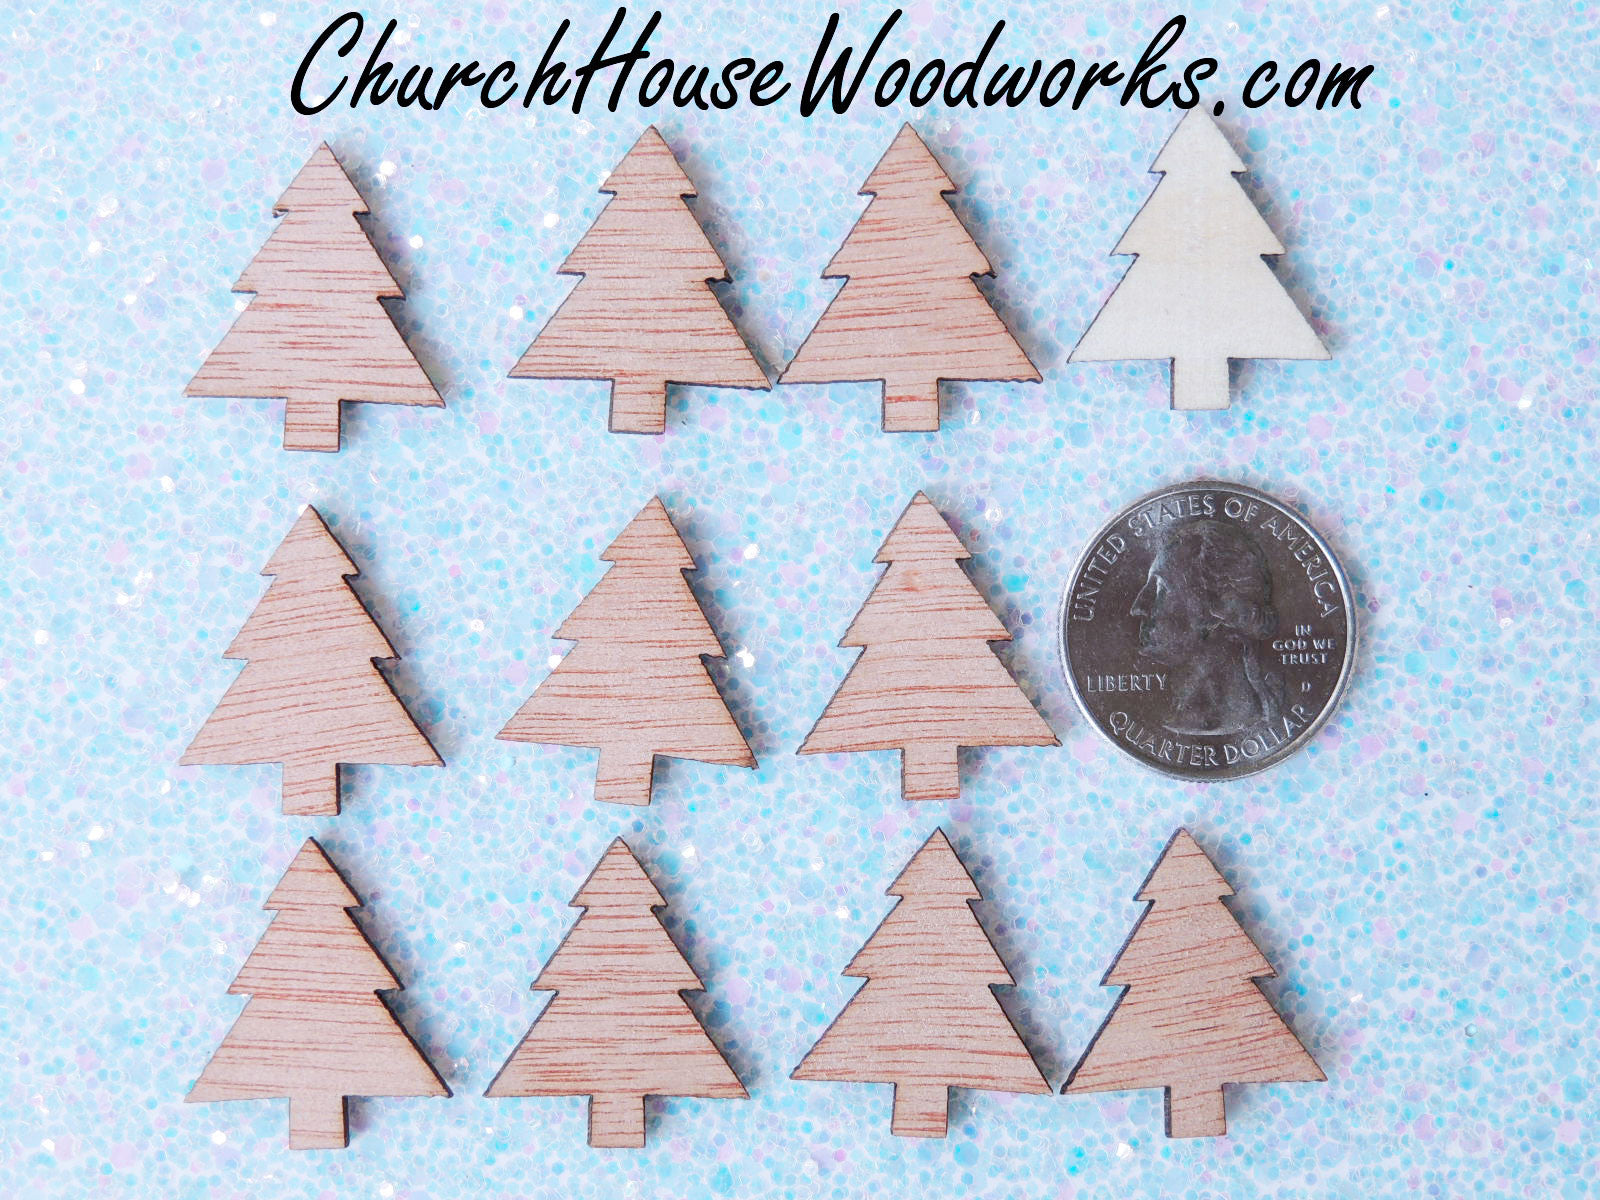 Mini Wooden Christmas Tree Ornaments Set Of 25 For Sale Church House Woodworks